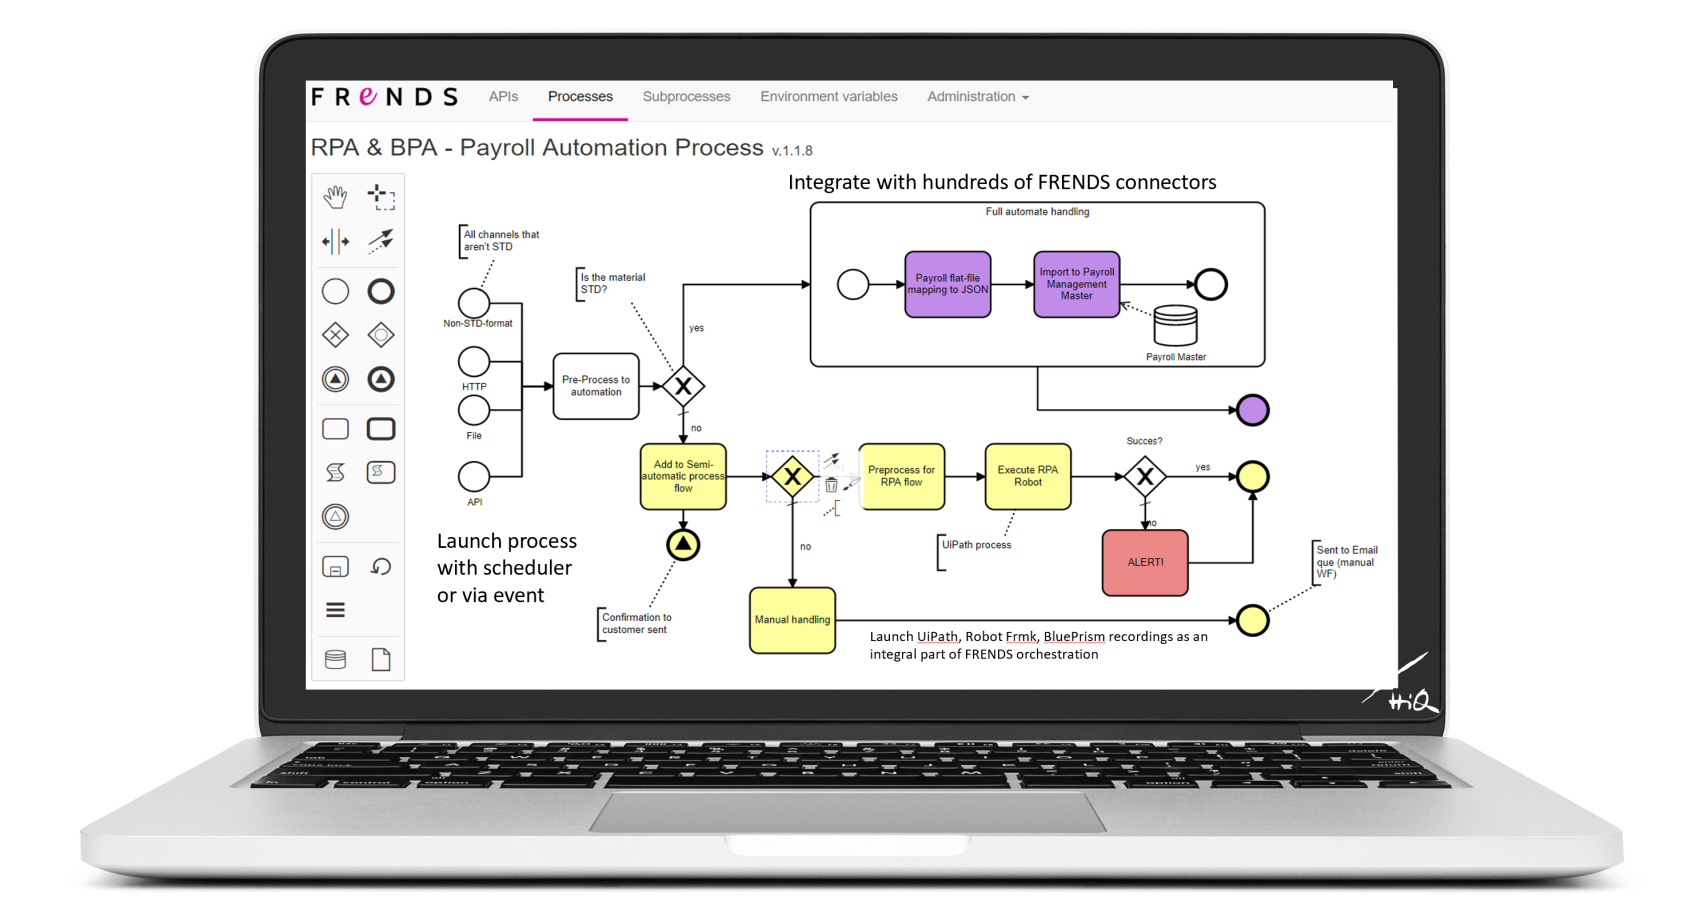 FRENDS process automation combines RPA and BPA